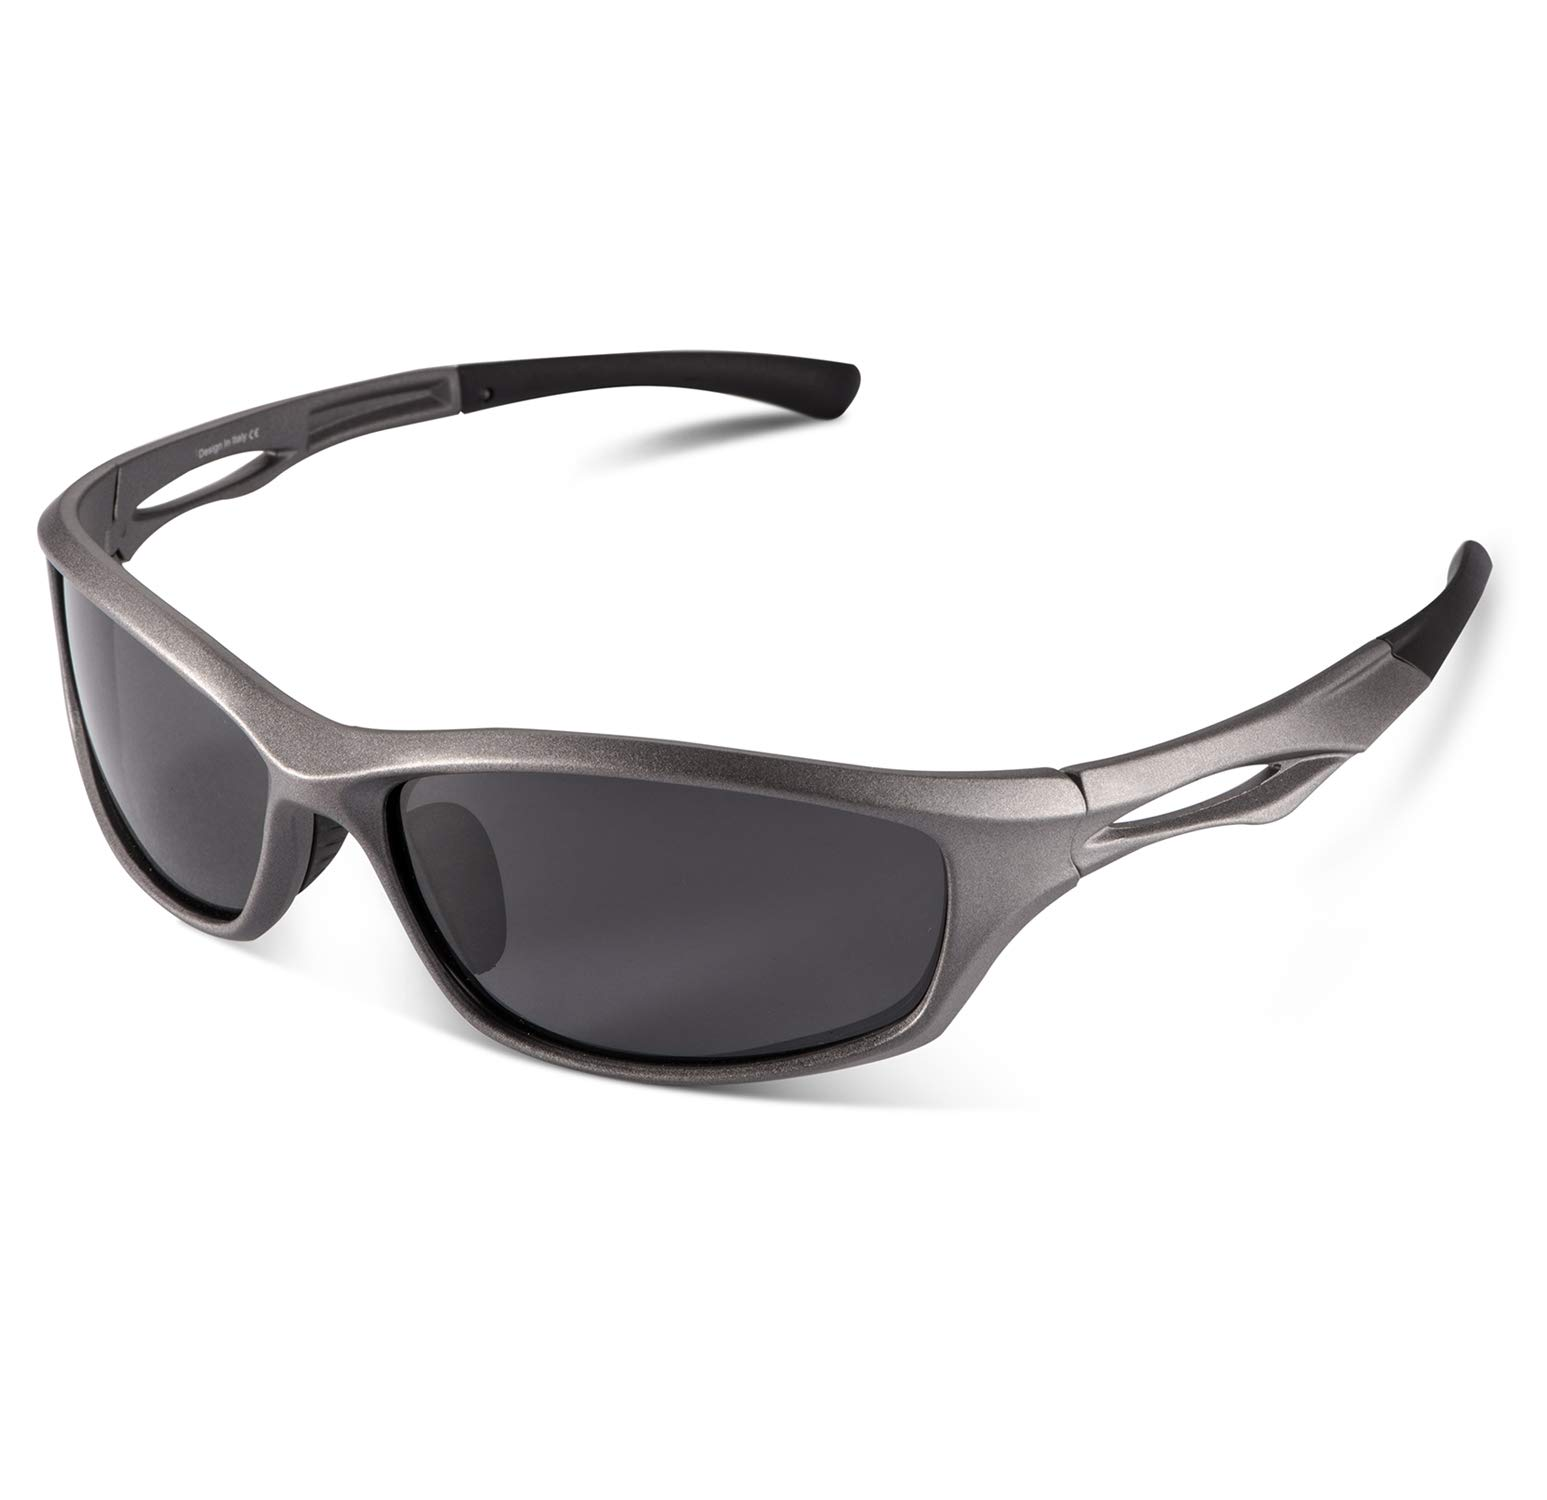 Carfia Polarized Sports Sunglasses for Cycling Fishing Running Driving UV400 Protection by Carfia